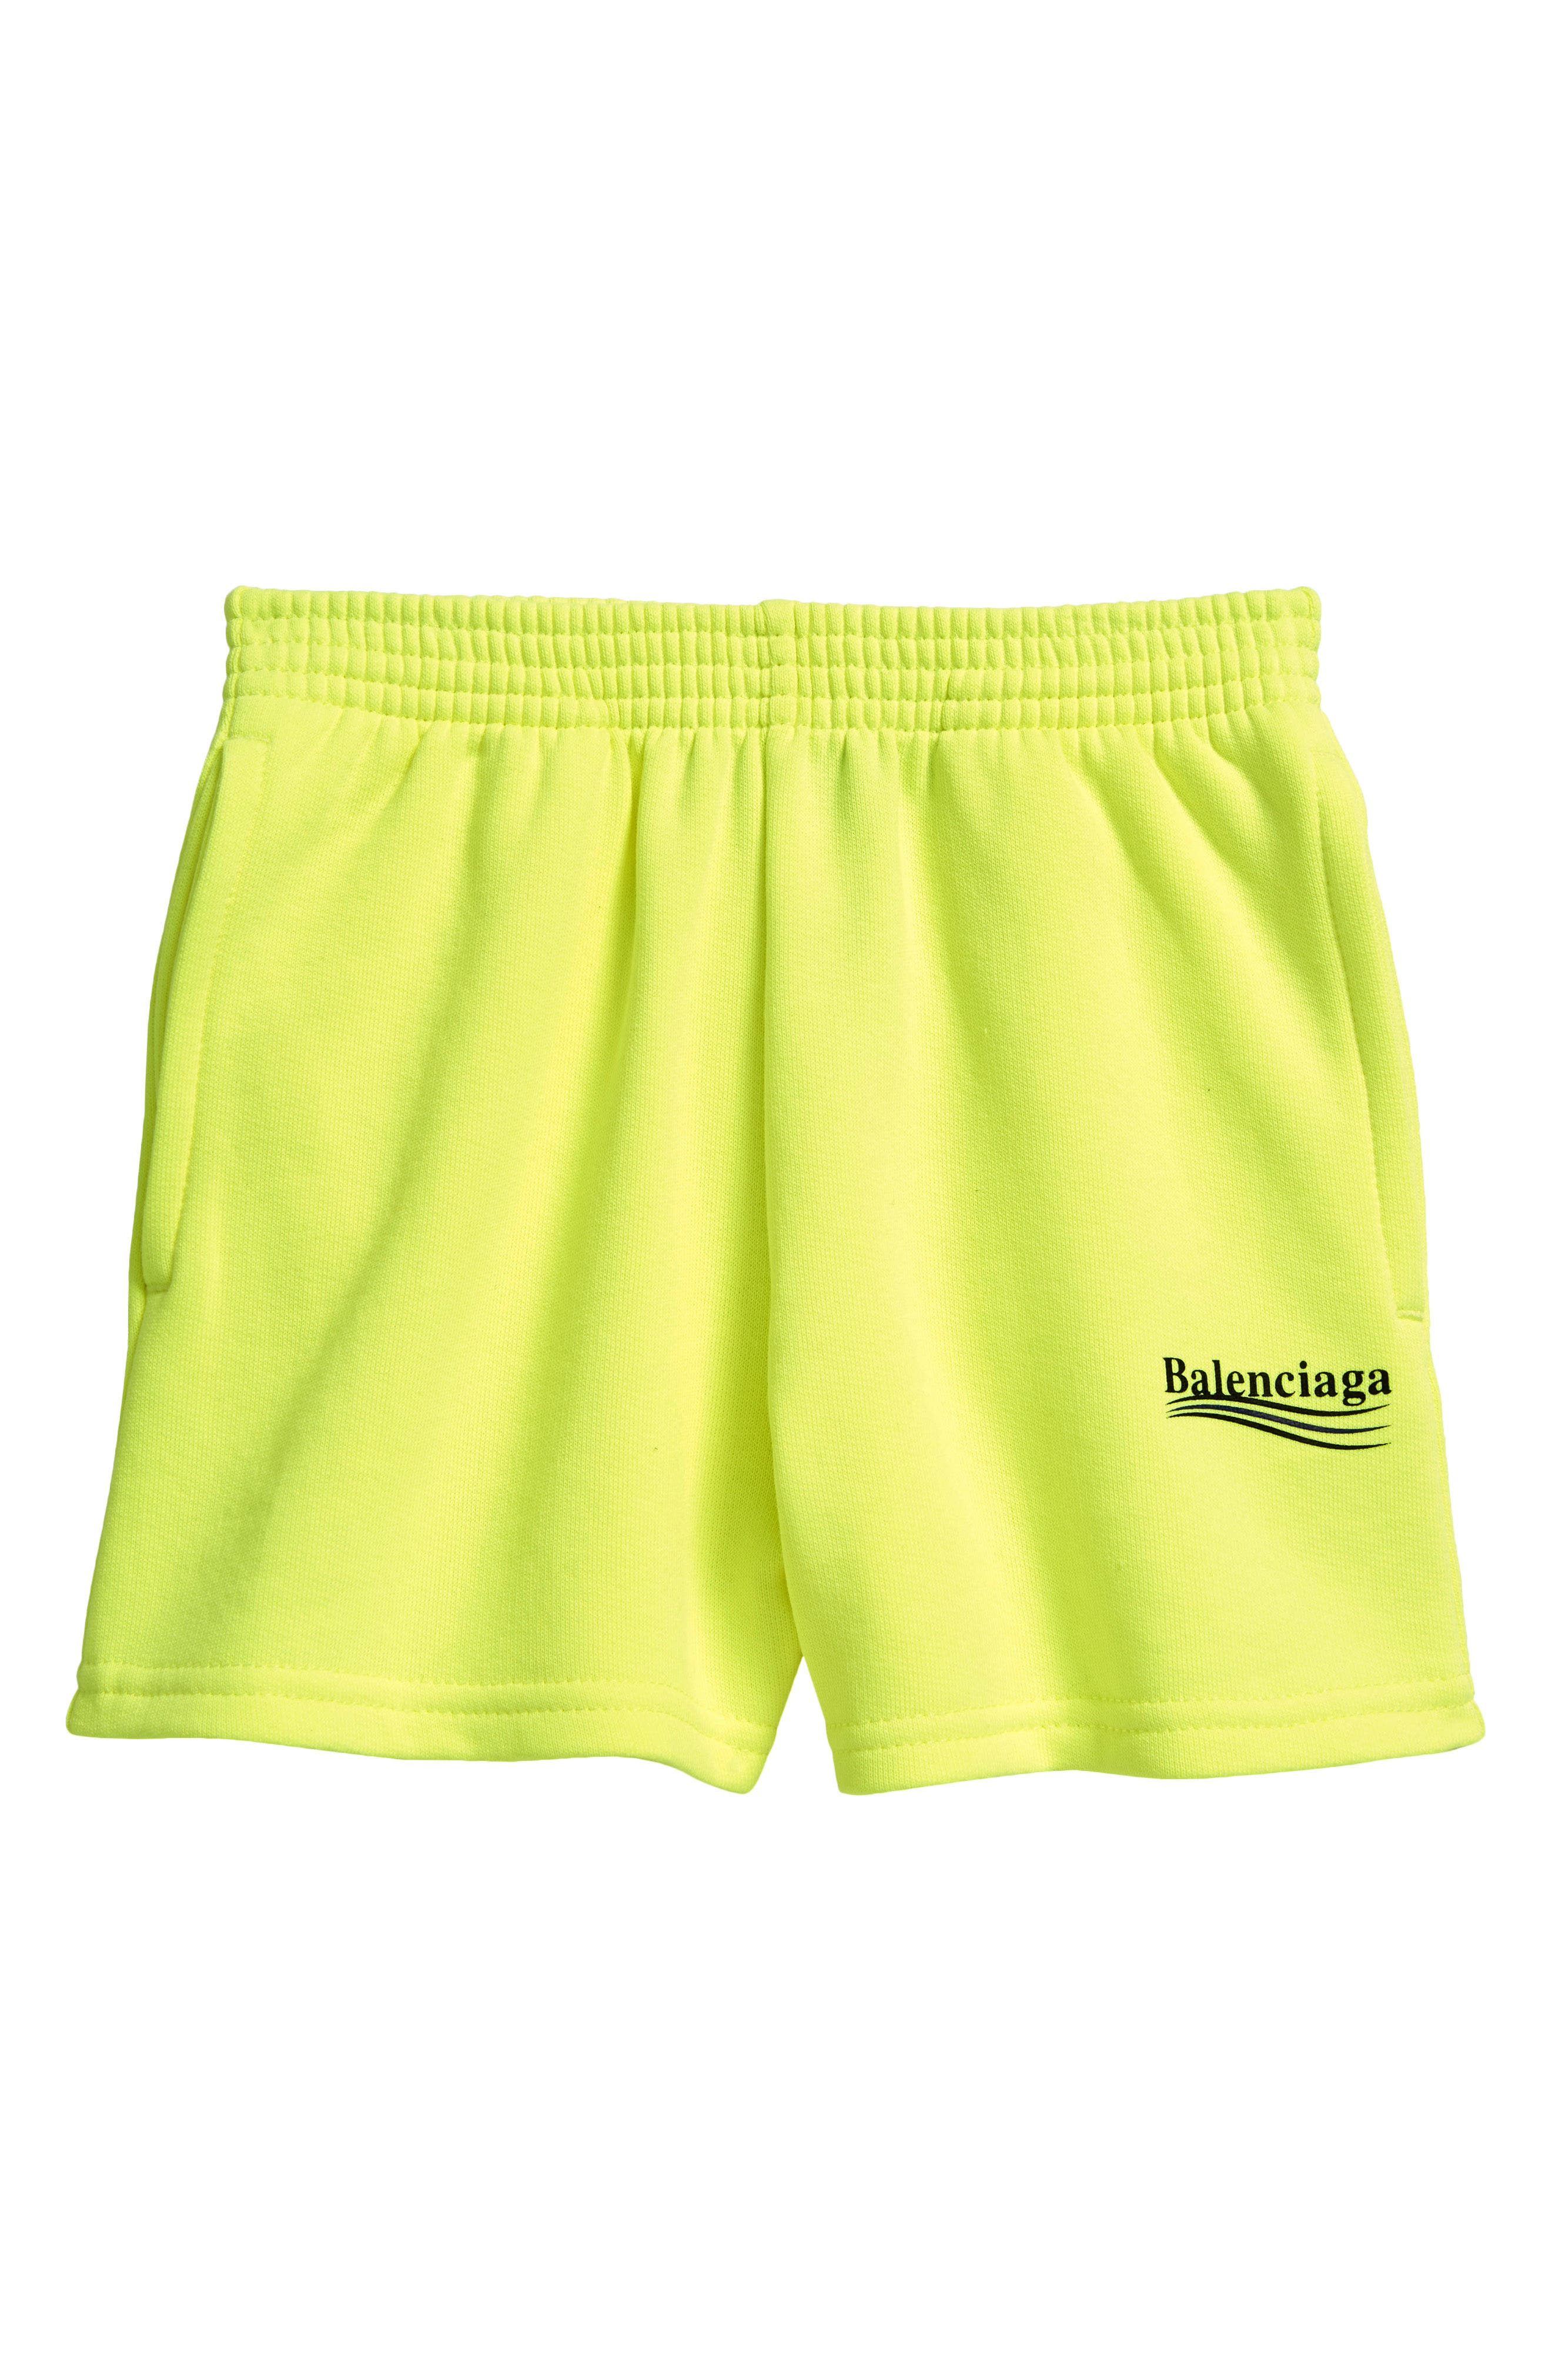 Kid Nation Kids Unisex 100/% Cotton Casual Pull On Shorts for Boys and Girls 4-12 Years